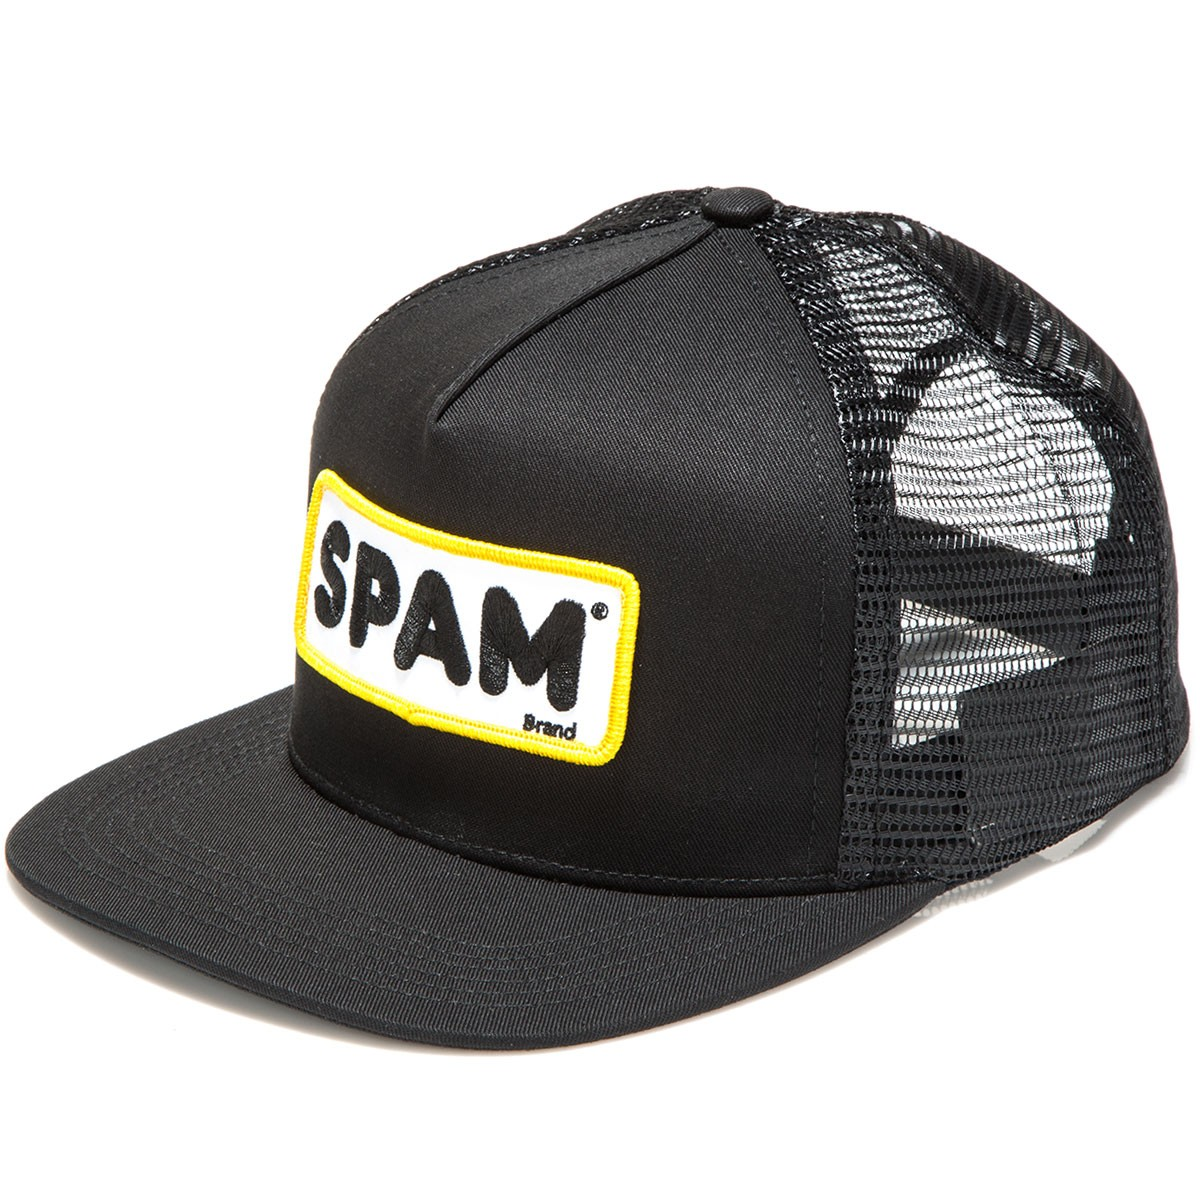 1473dbbea988d HUF Spam Trucker Hat - Black